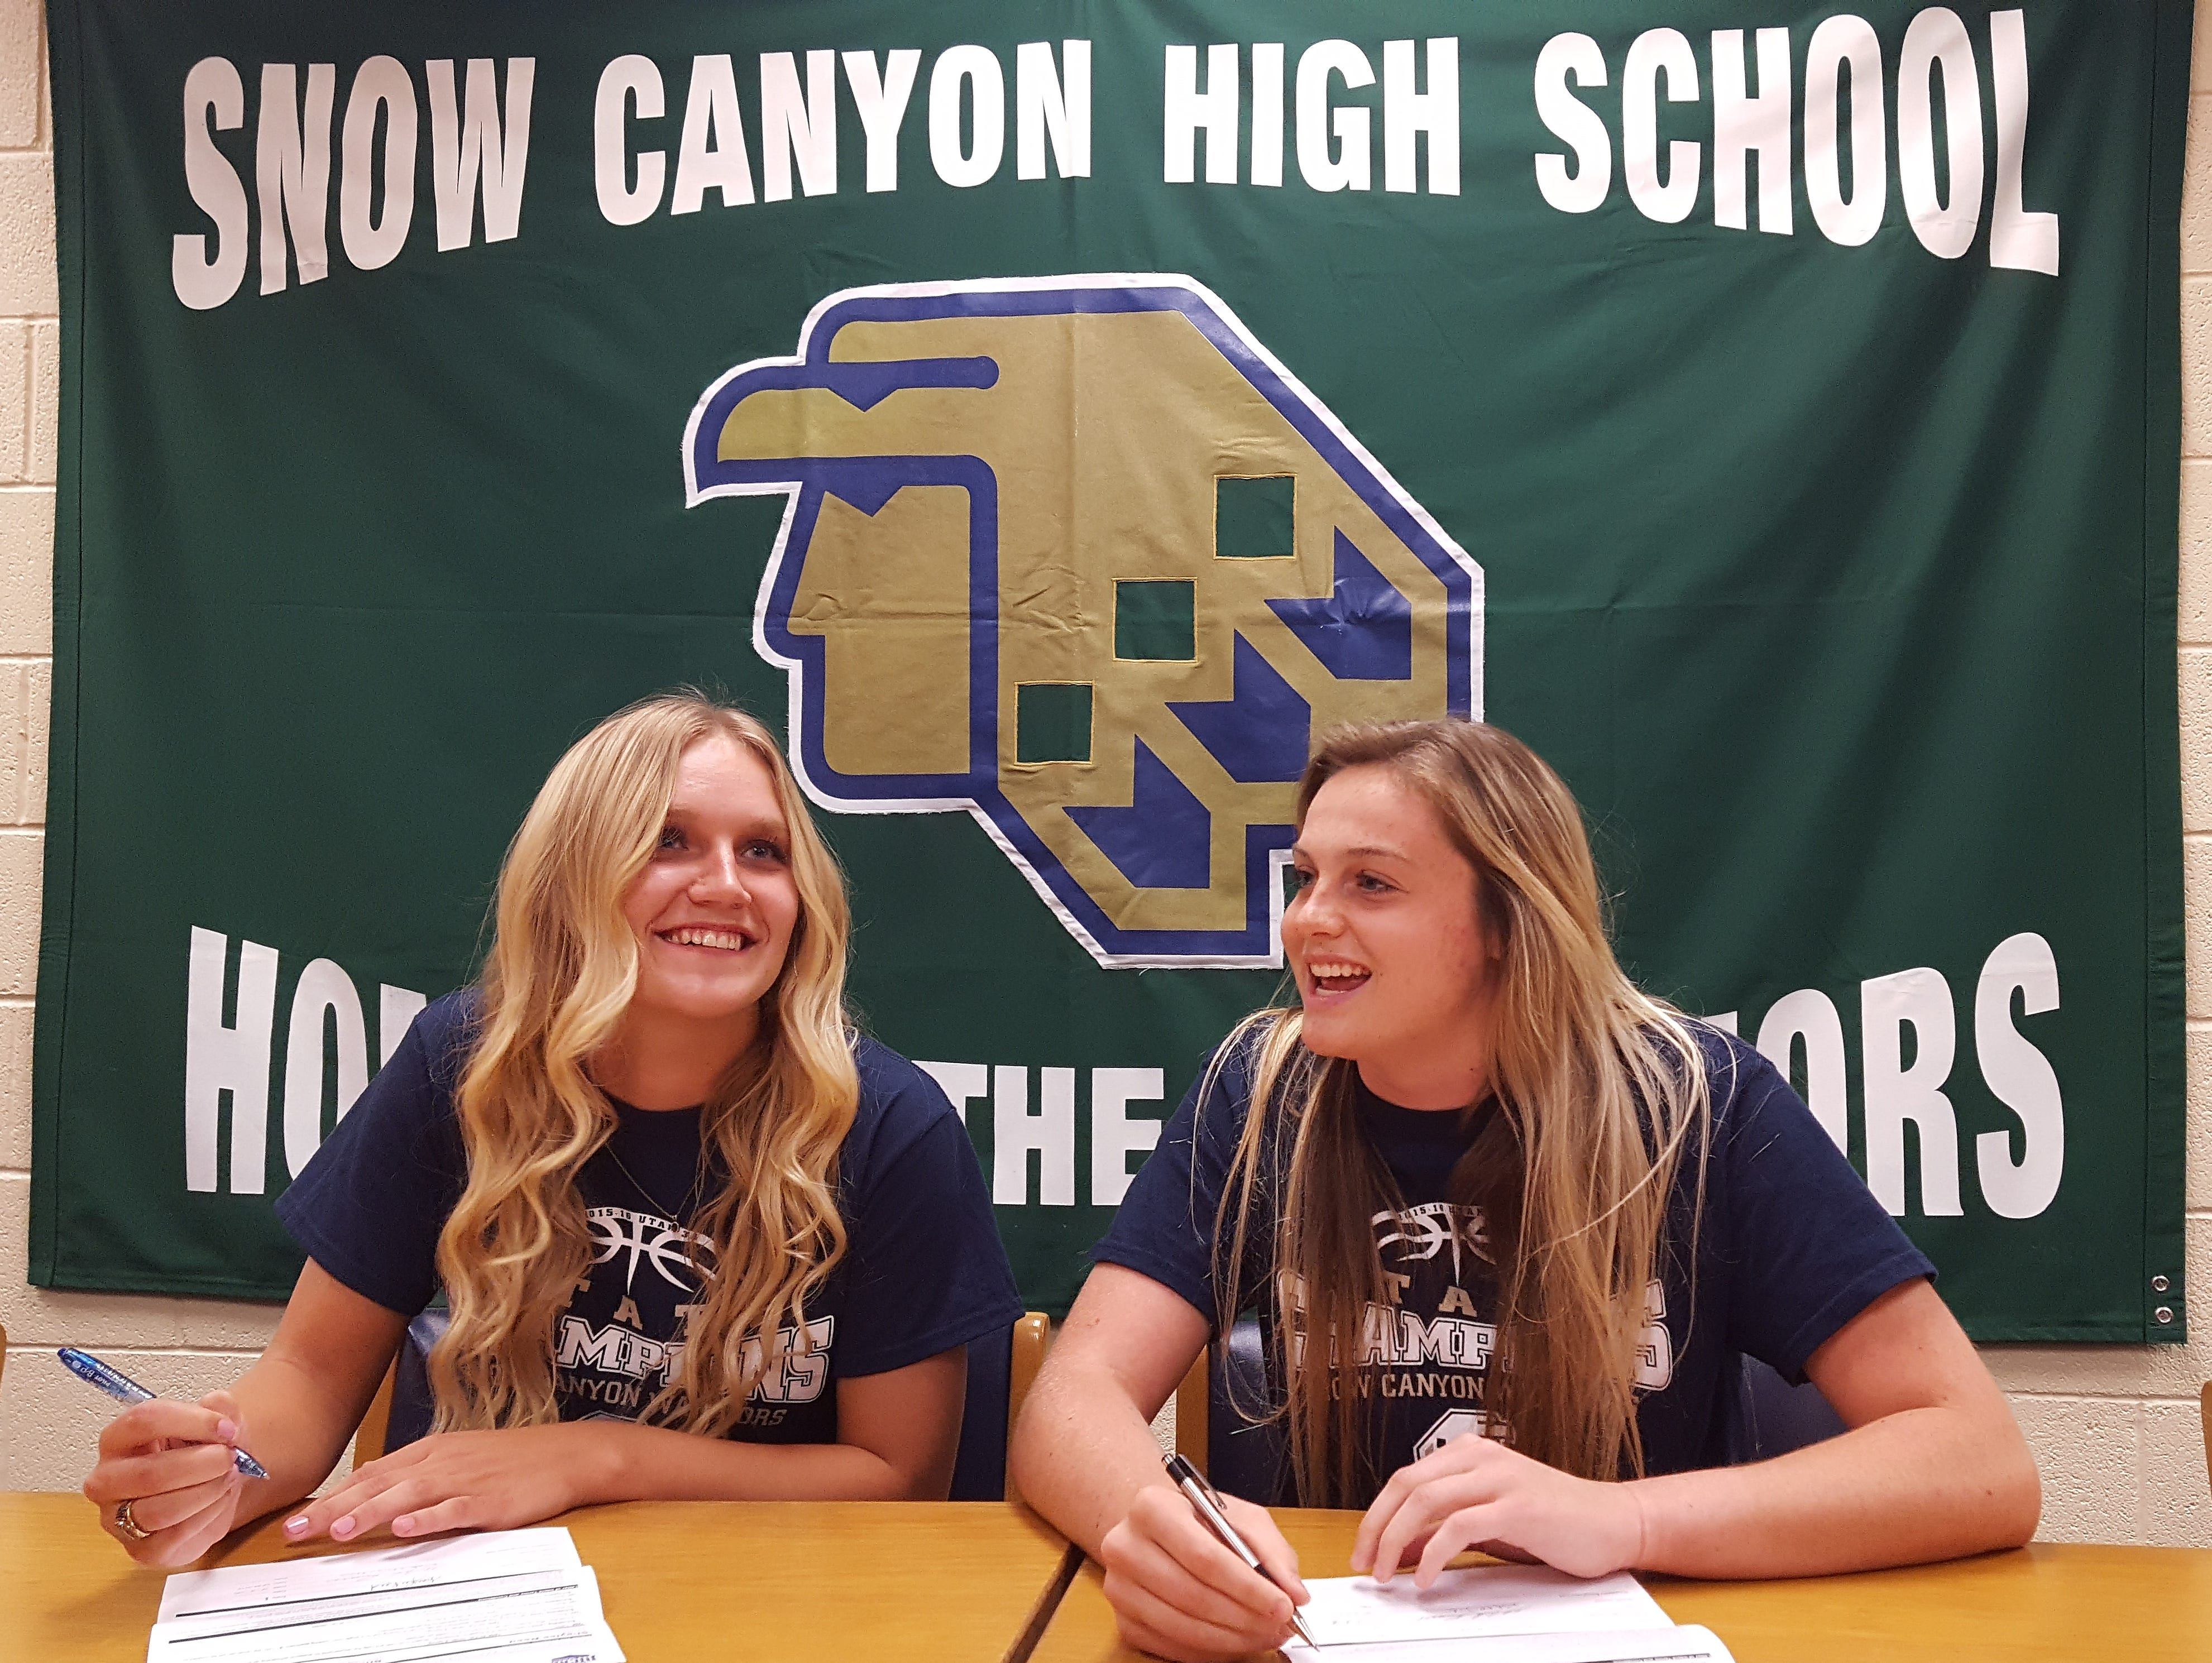 Snow Canyon's Shaylee Reed (left) and Mada Mooring (right) sign their Letters of Intent to Snow College on Friday.